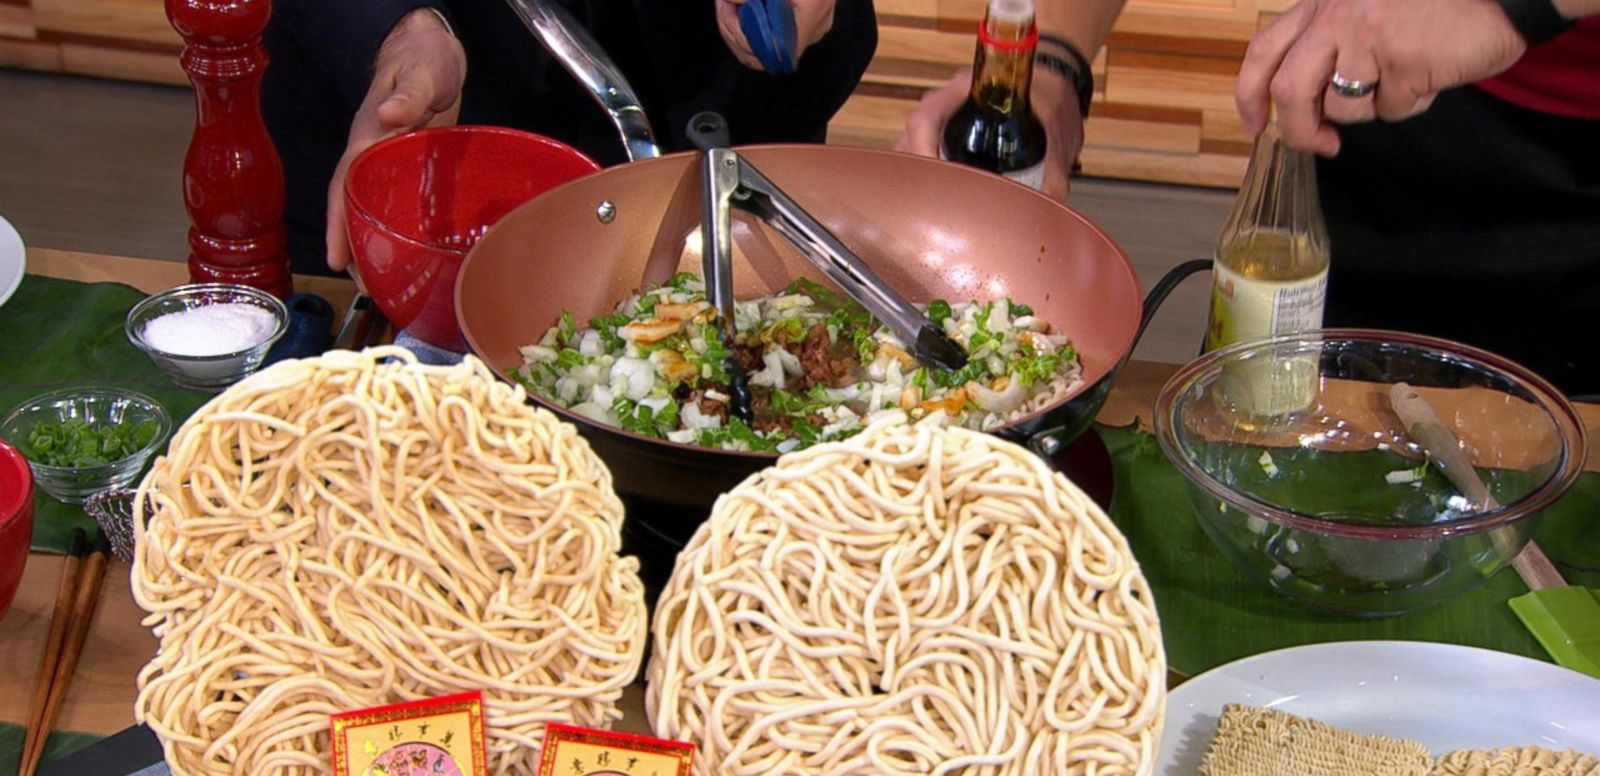 VIDEO: Chef Ming Tsai Takes on 'GMA's' $5 Dinner Challenge